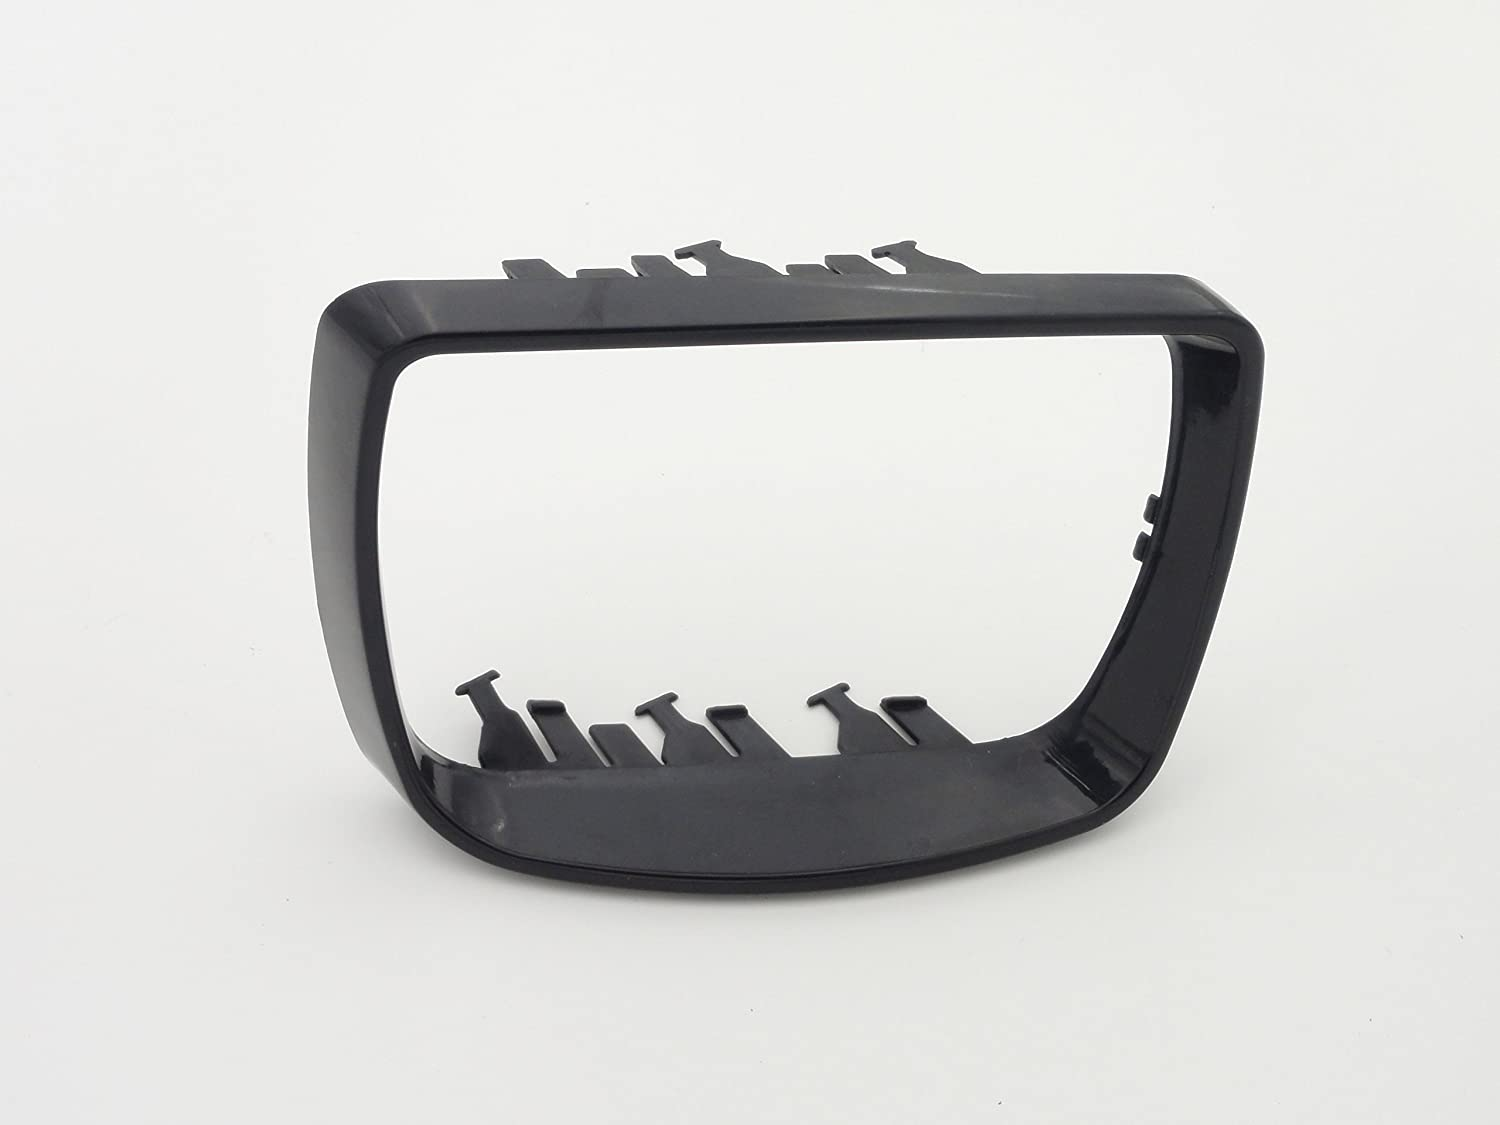 For BMW E53 X5 1999-2006 Door Mirror Cover Cap Trim Ring Driver Side 51168254903